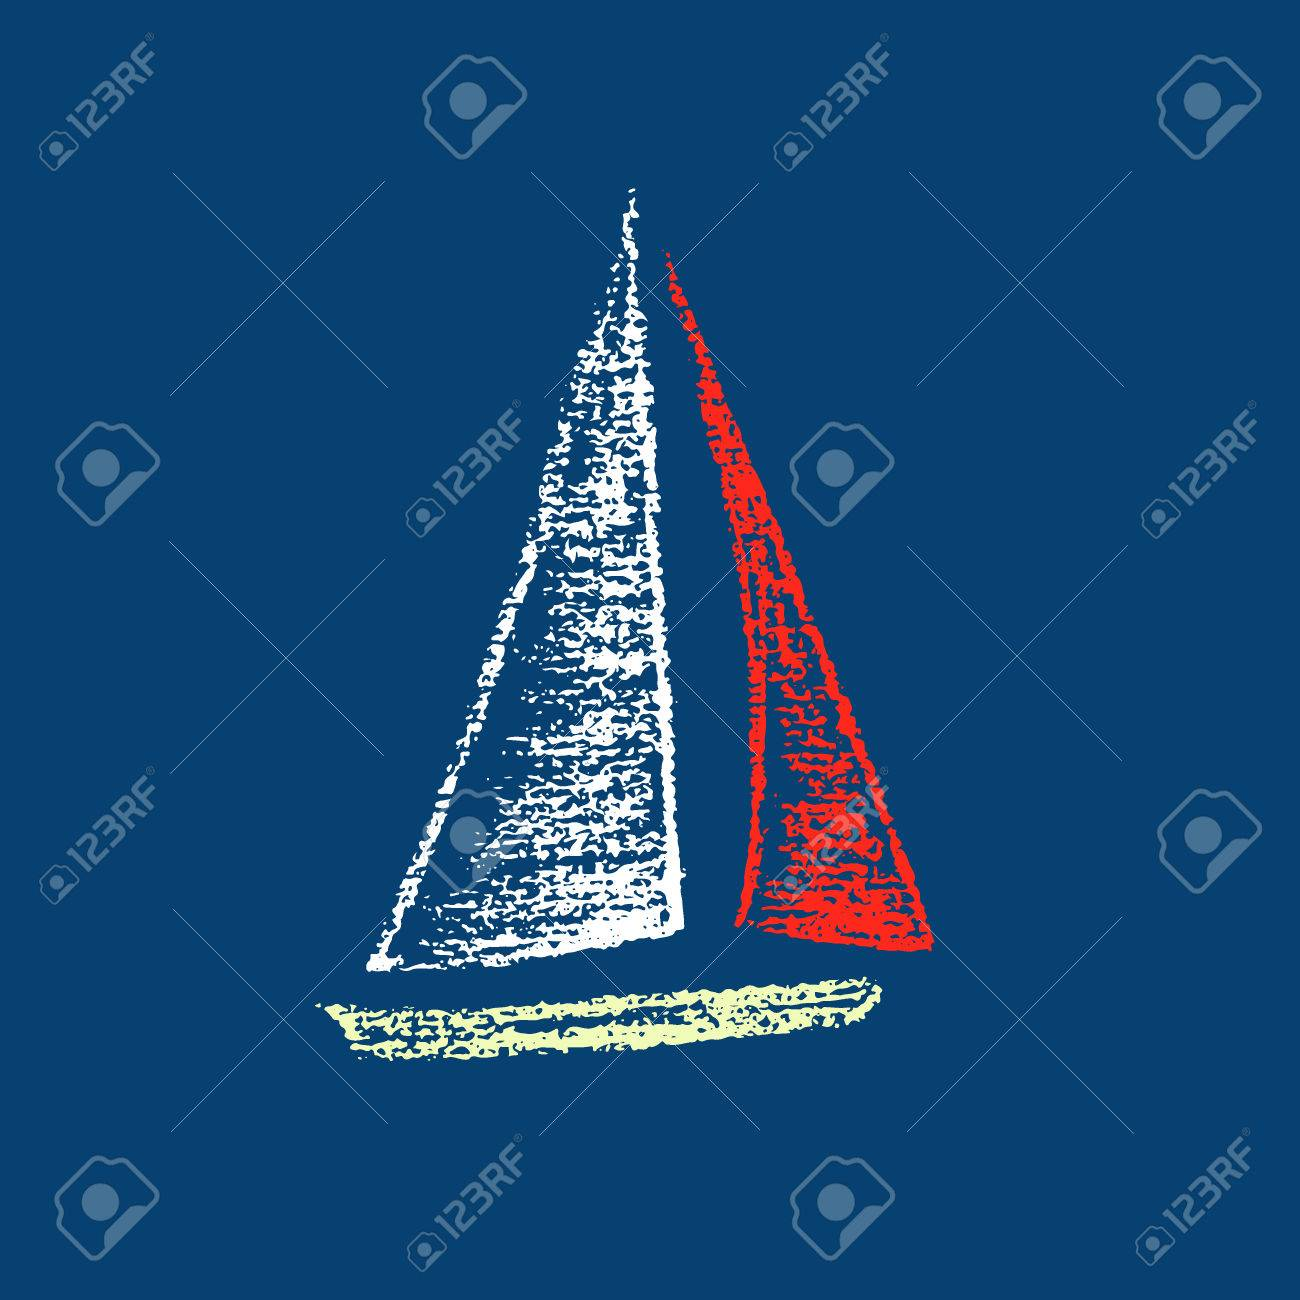 Vector illustration of sailing ship. Hand drawn with chalk sailing boat on deep marine background. Beautiful nautical design element. - 57158288